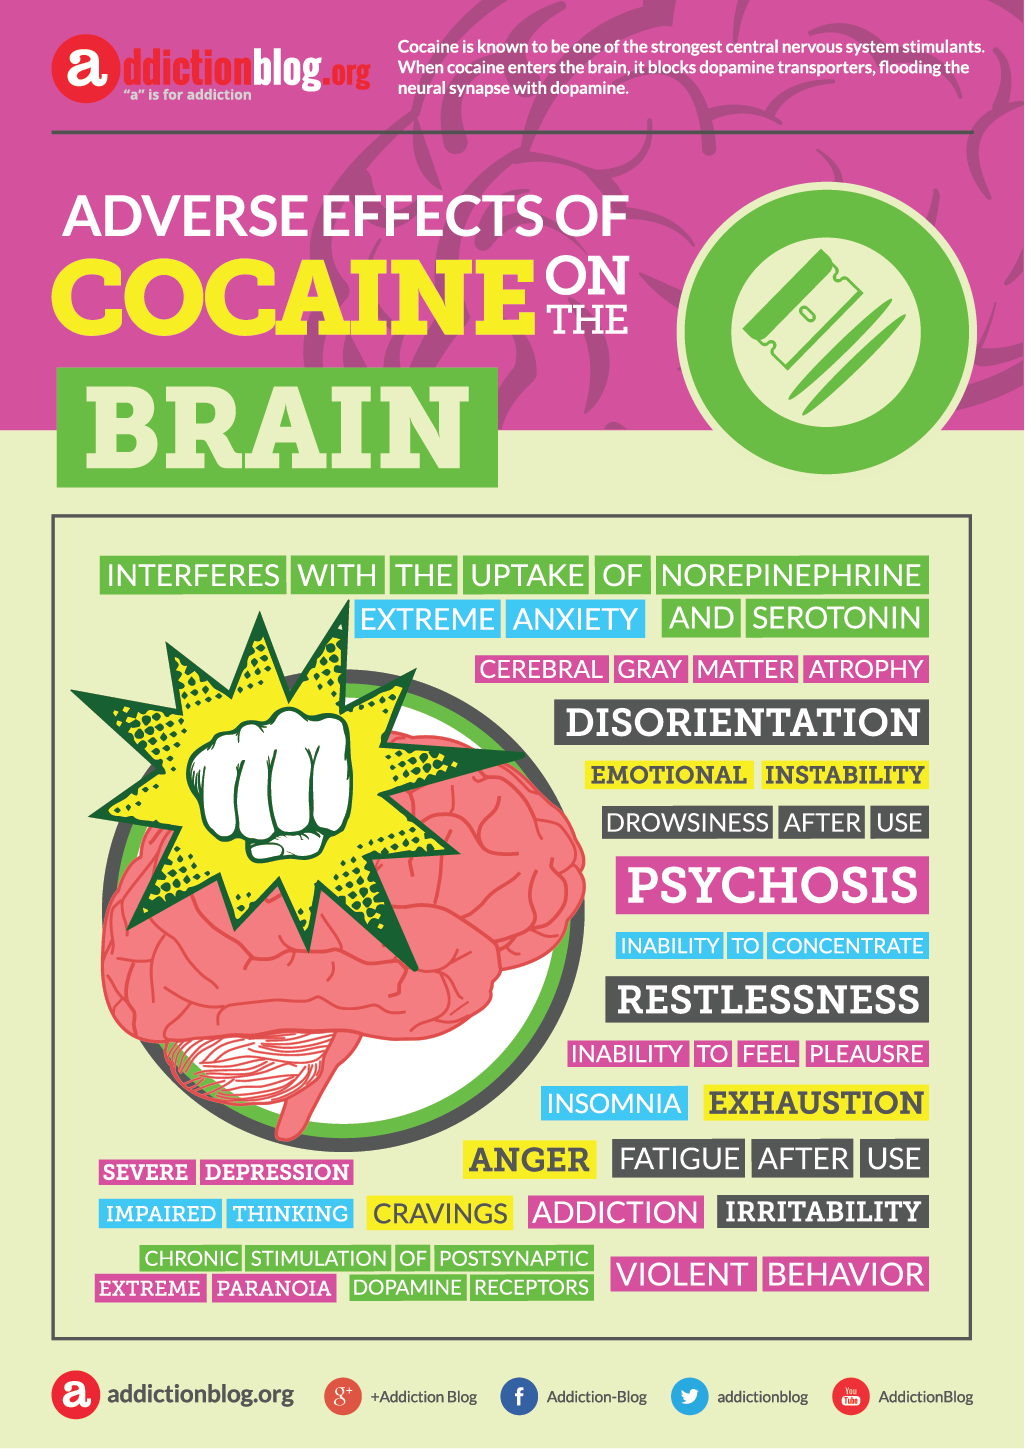 Adverse effects of cocaine on the brain (INFOGRAPHIC)